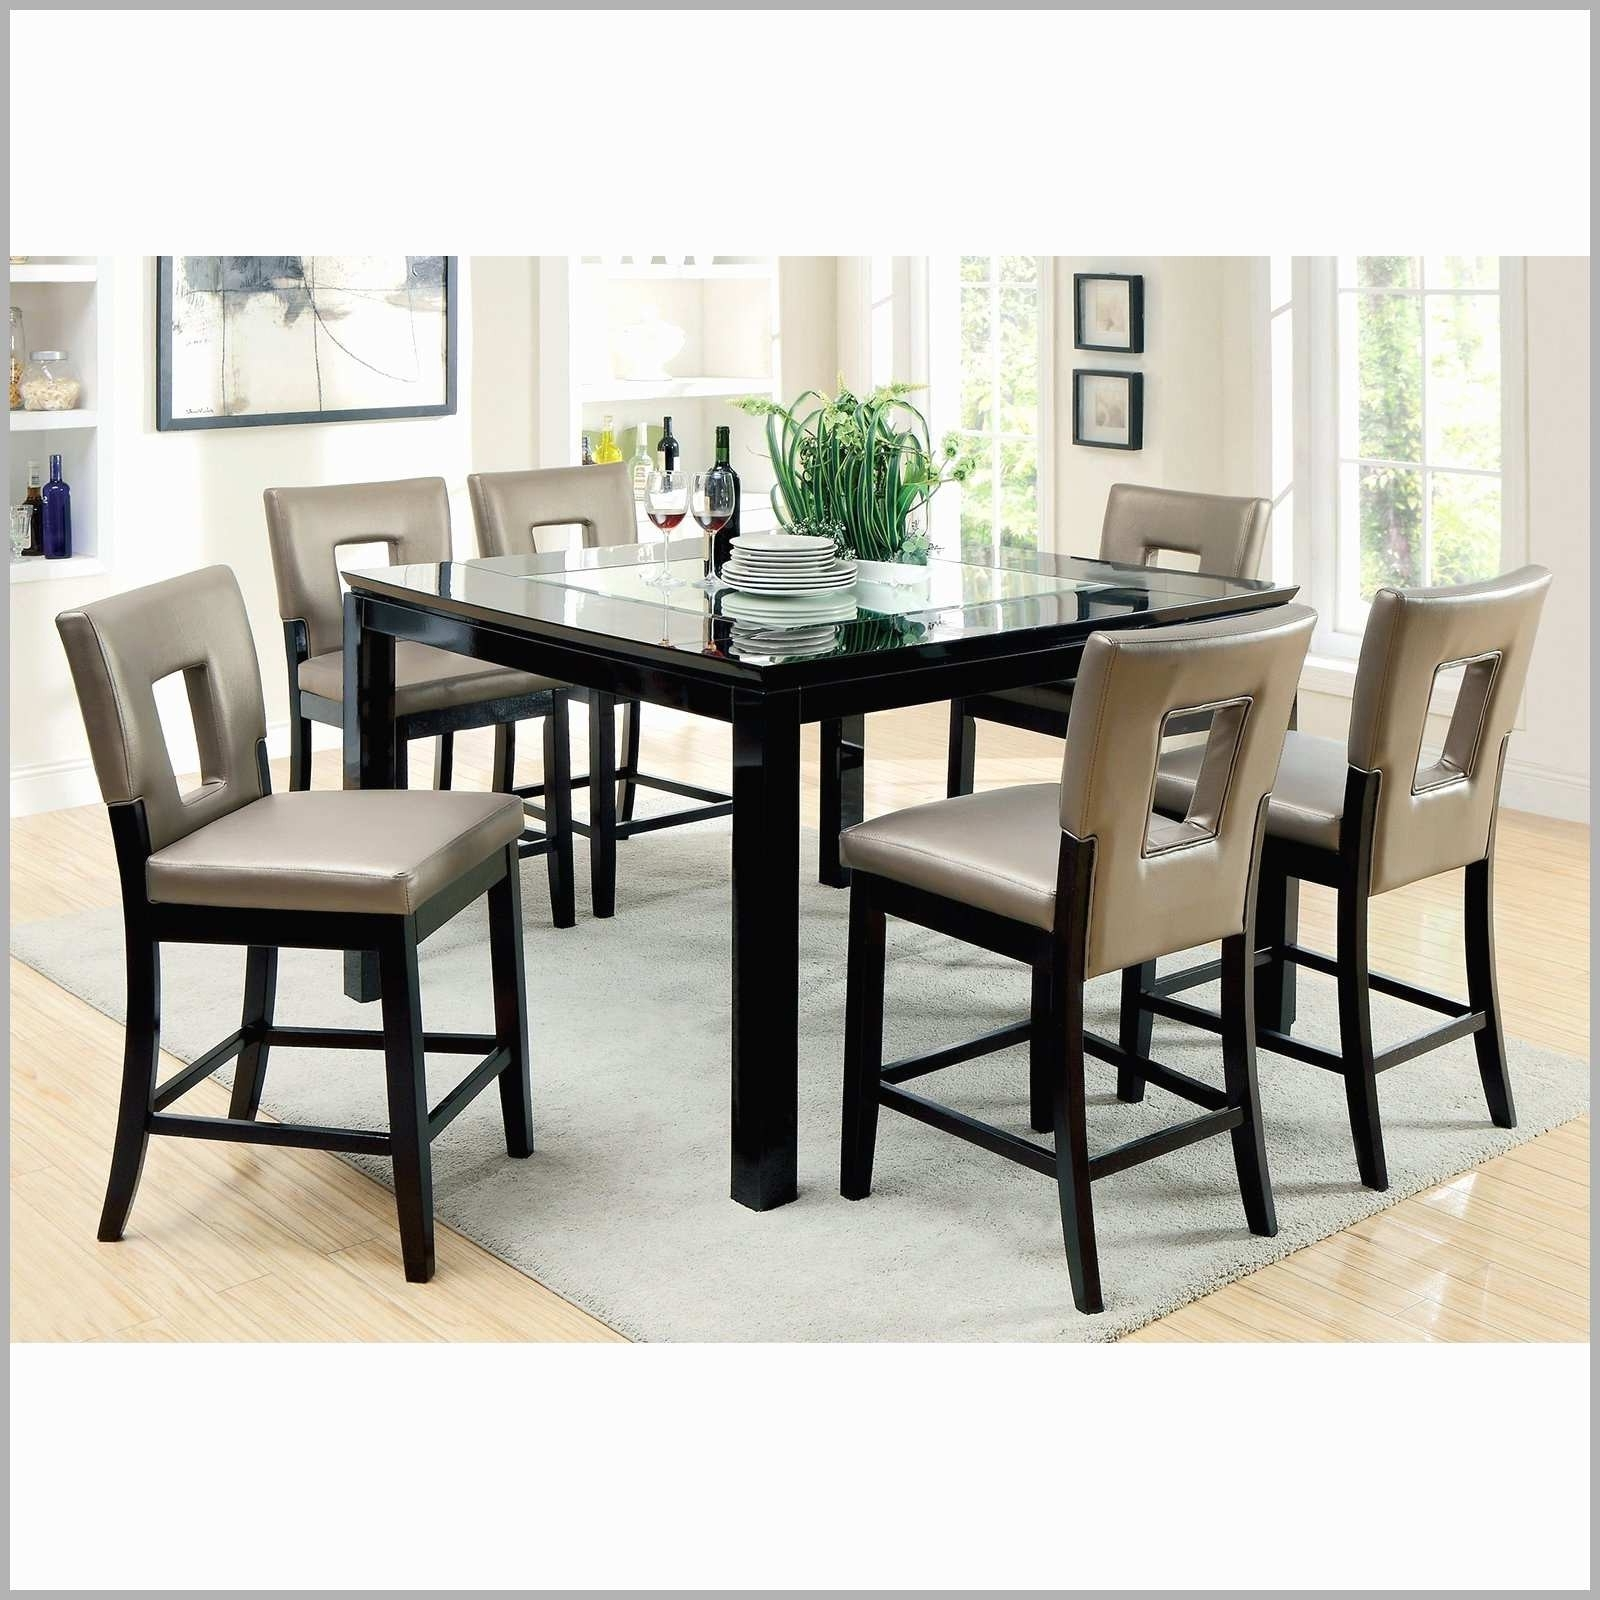 Most Popular White High Gloss Extending Dining Table Luxury 8 Seater Dining Table Inside White Dining Tables 8 Seater (View 12 of 25)